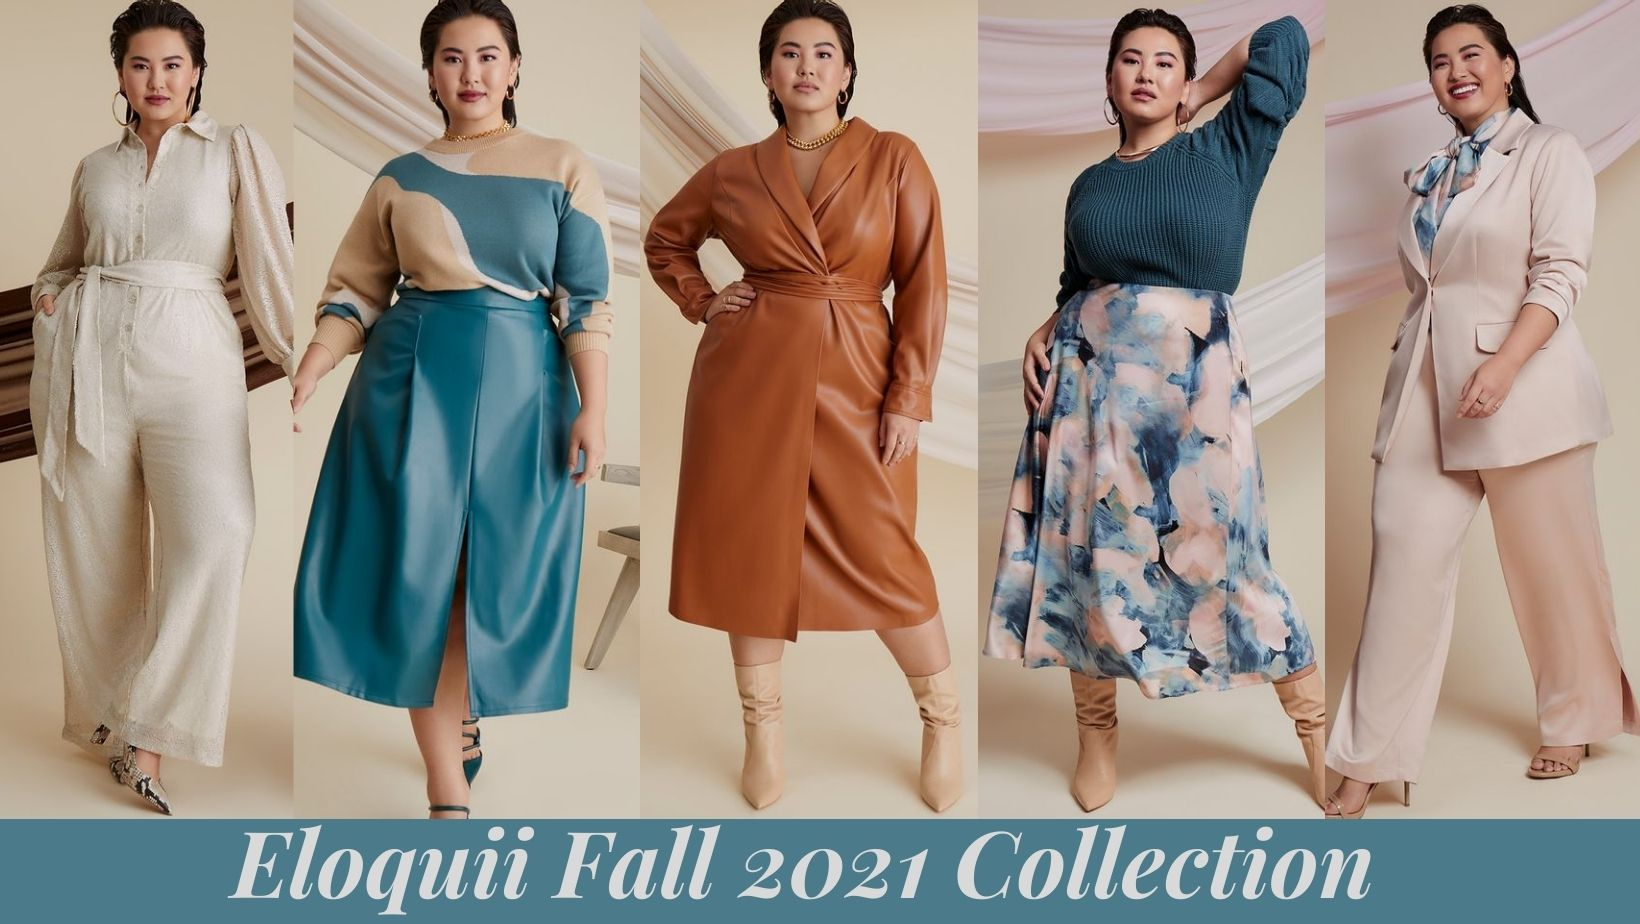 eloquii fall 2021 collection